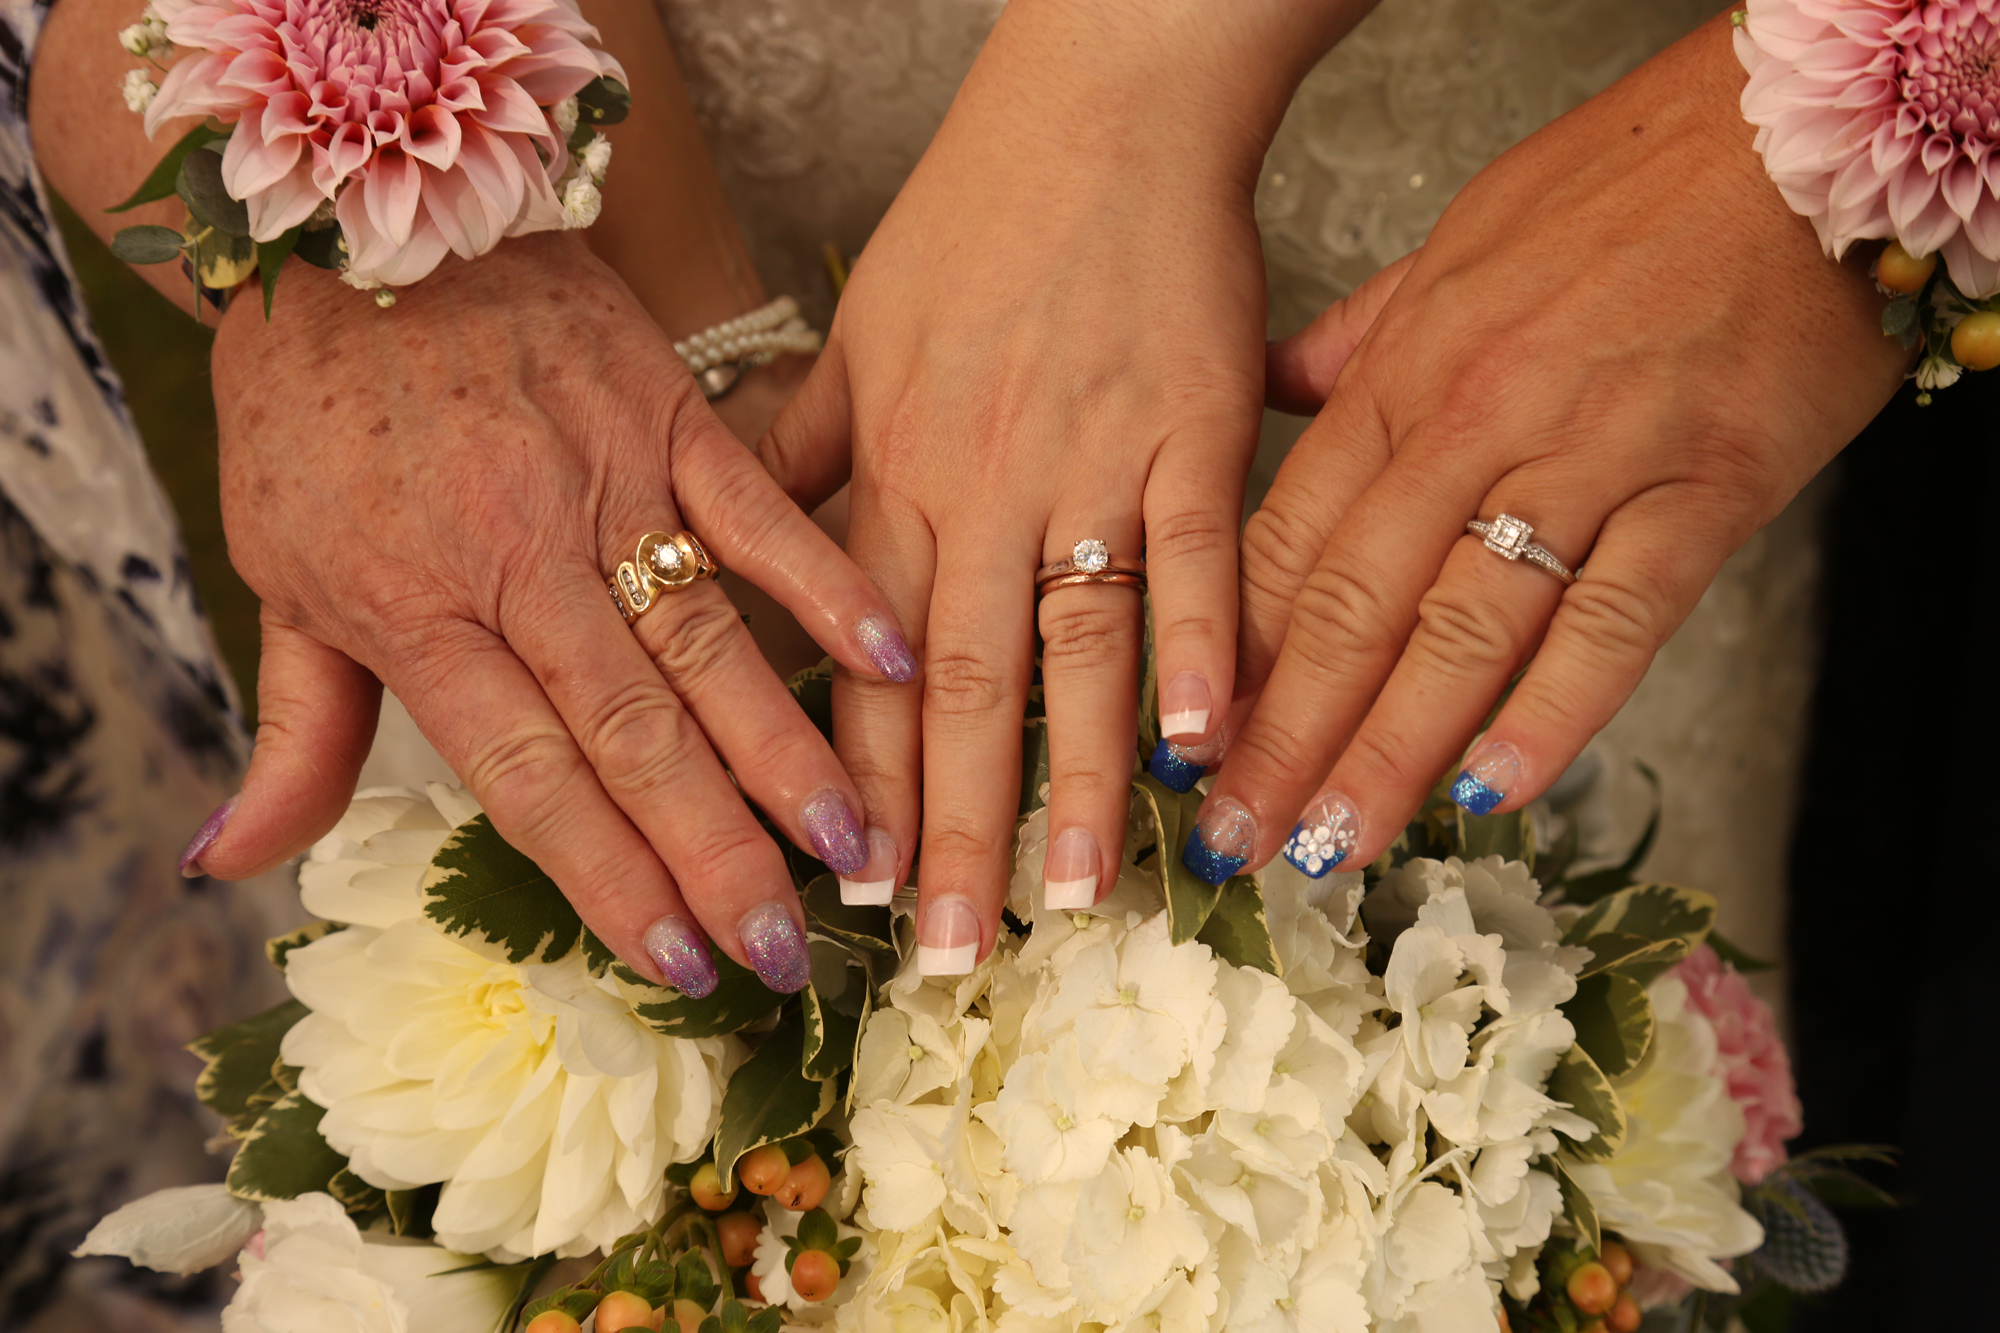 3 generations of women and rings